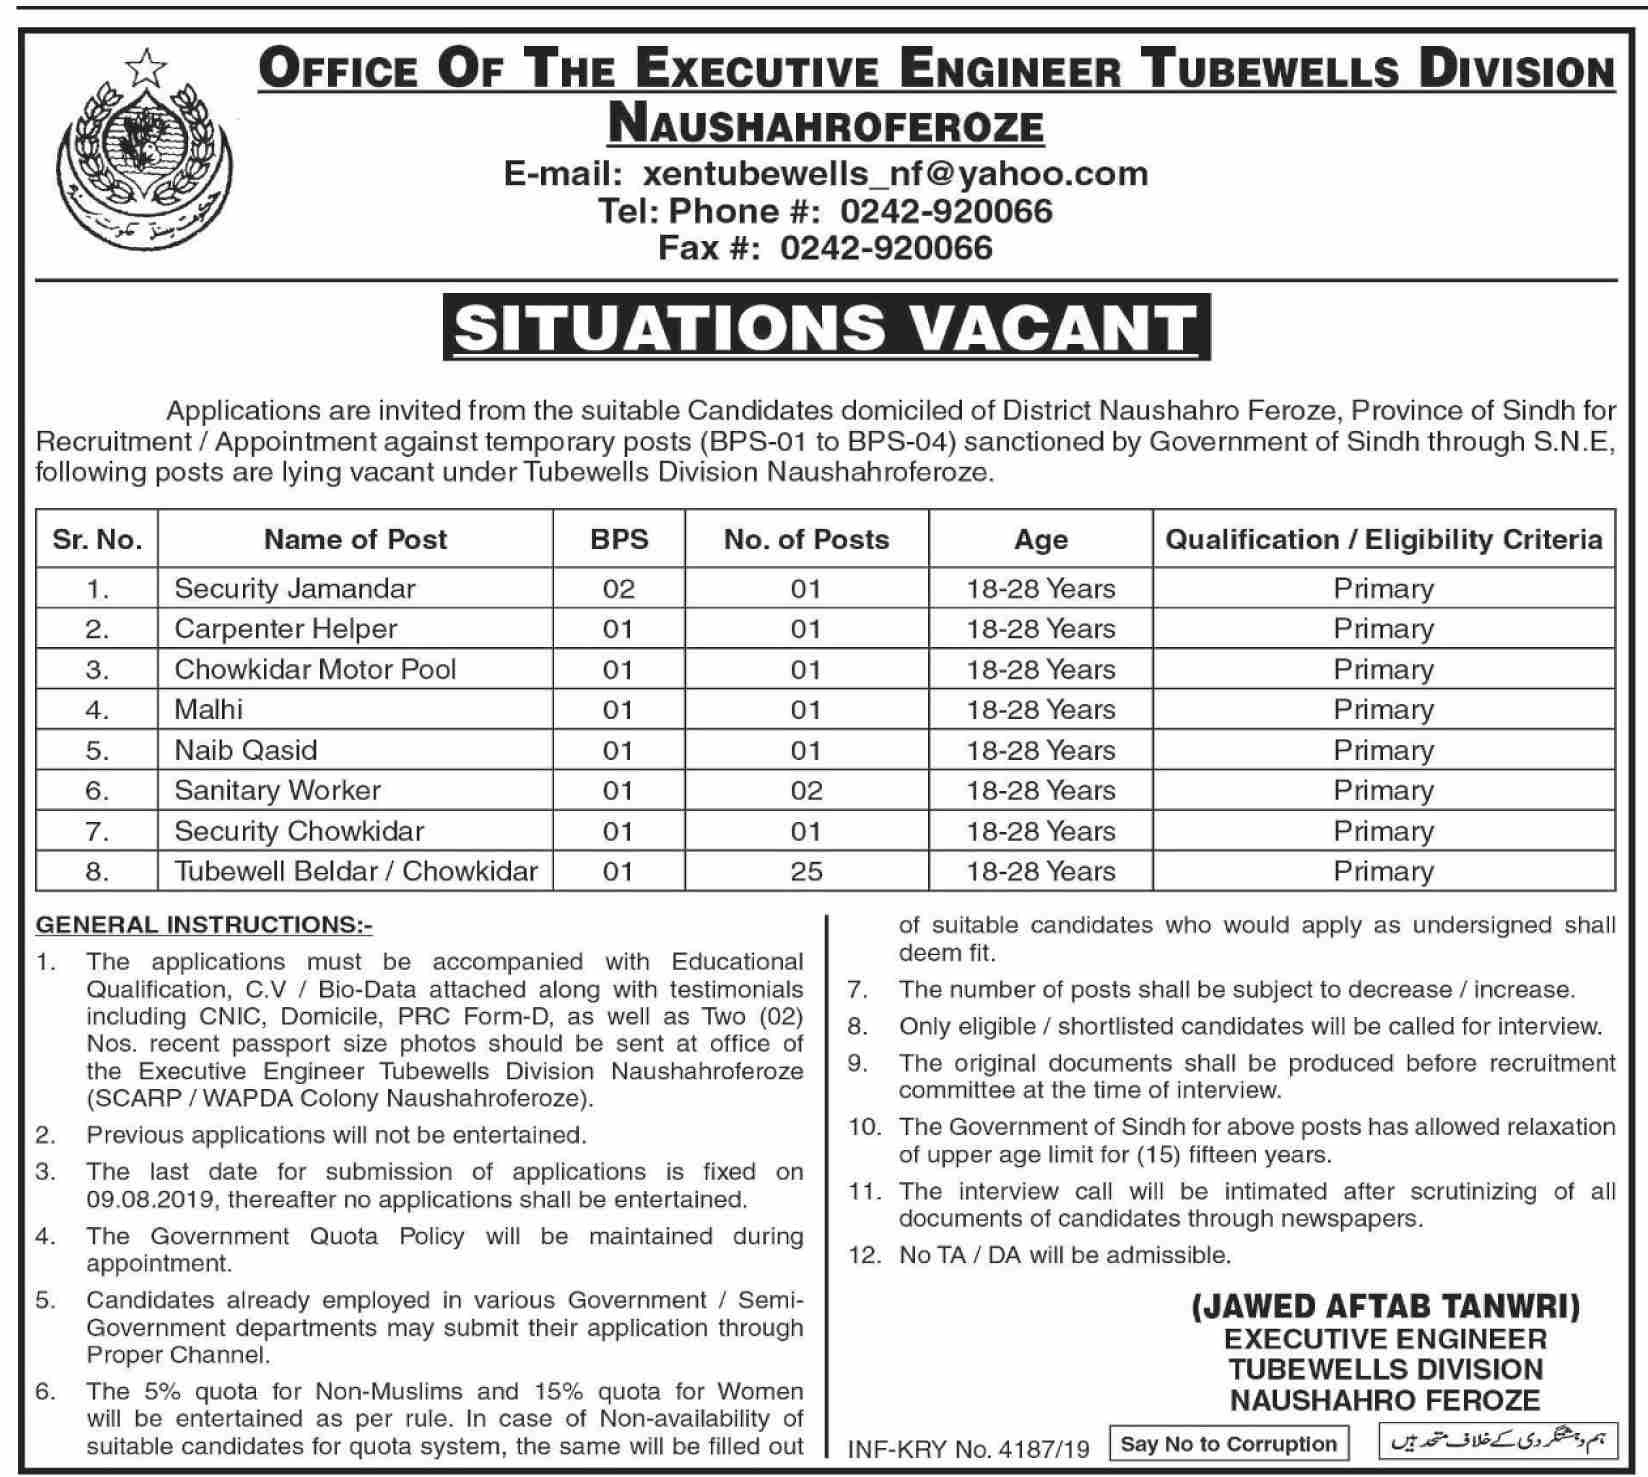 Office Of The Executive Engineer Tubewells Division 29 Jul